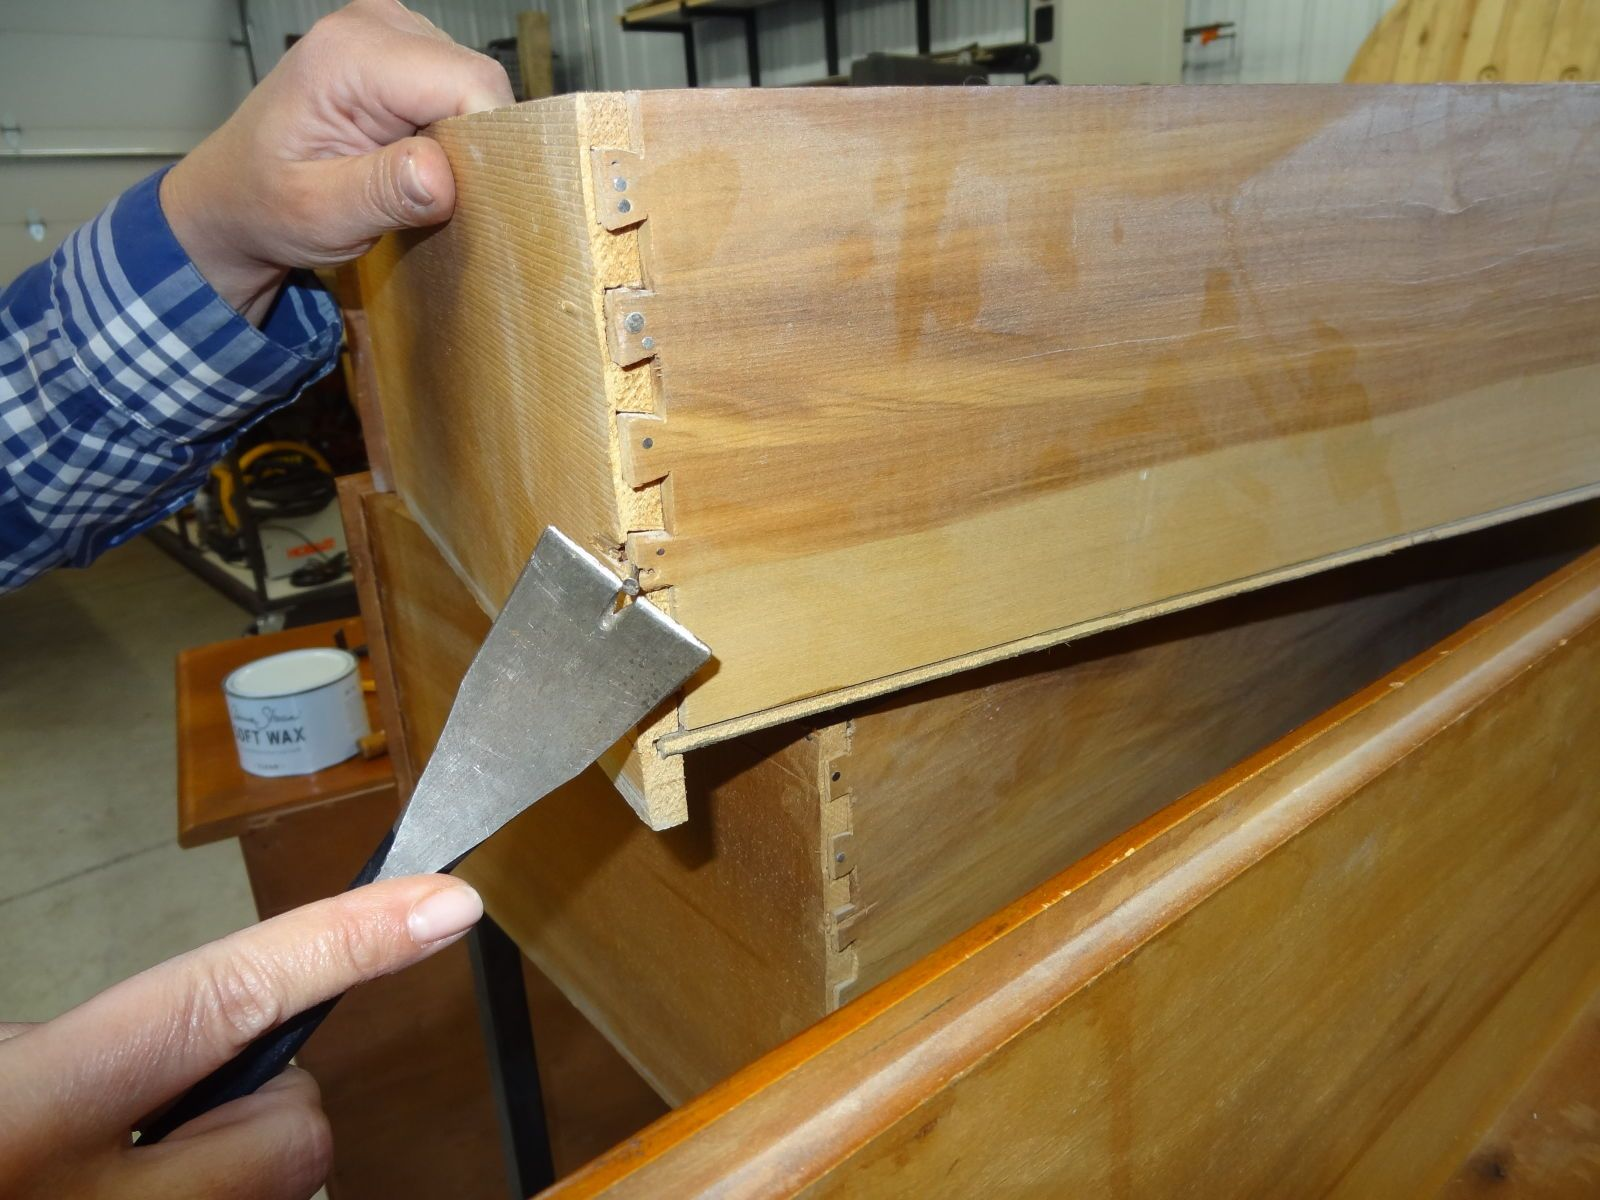 10 Furniture Problems You Can Fix Yourself Repair Wood Furniture Wood Repair Diy Furniture Repair